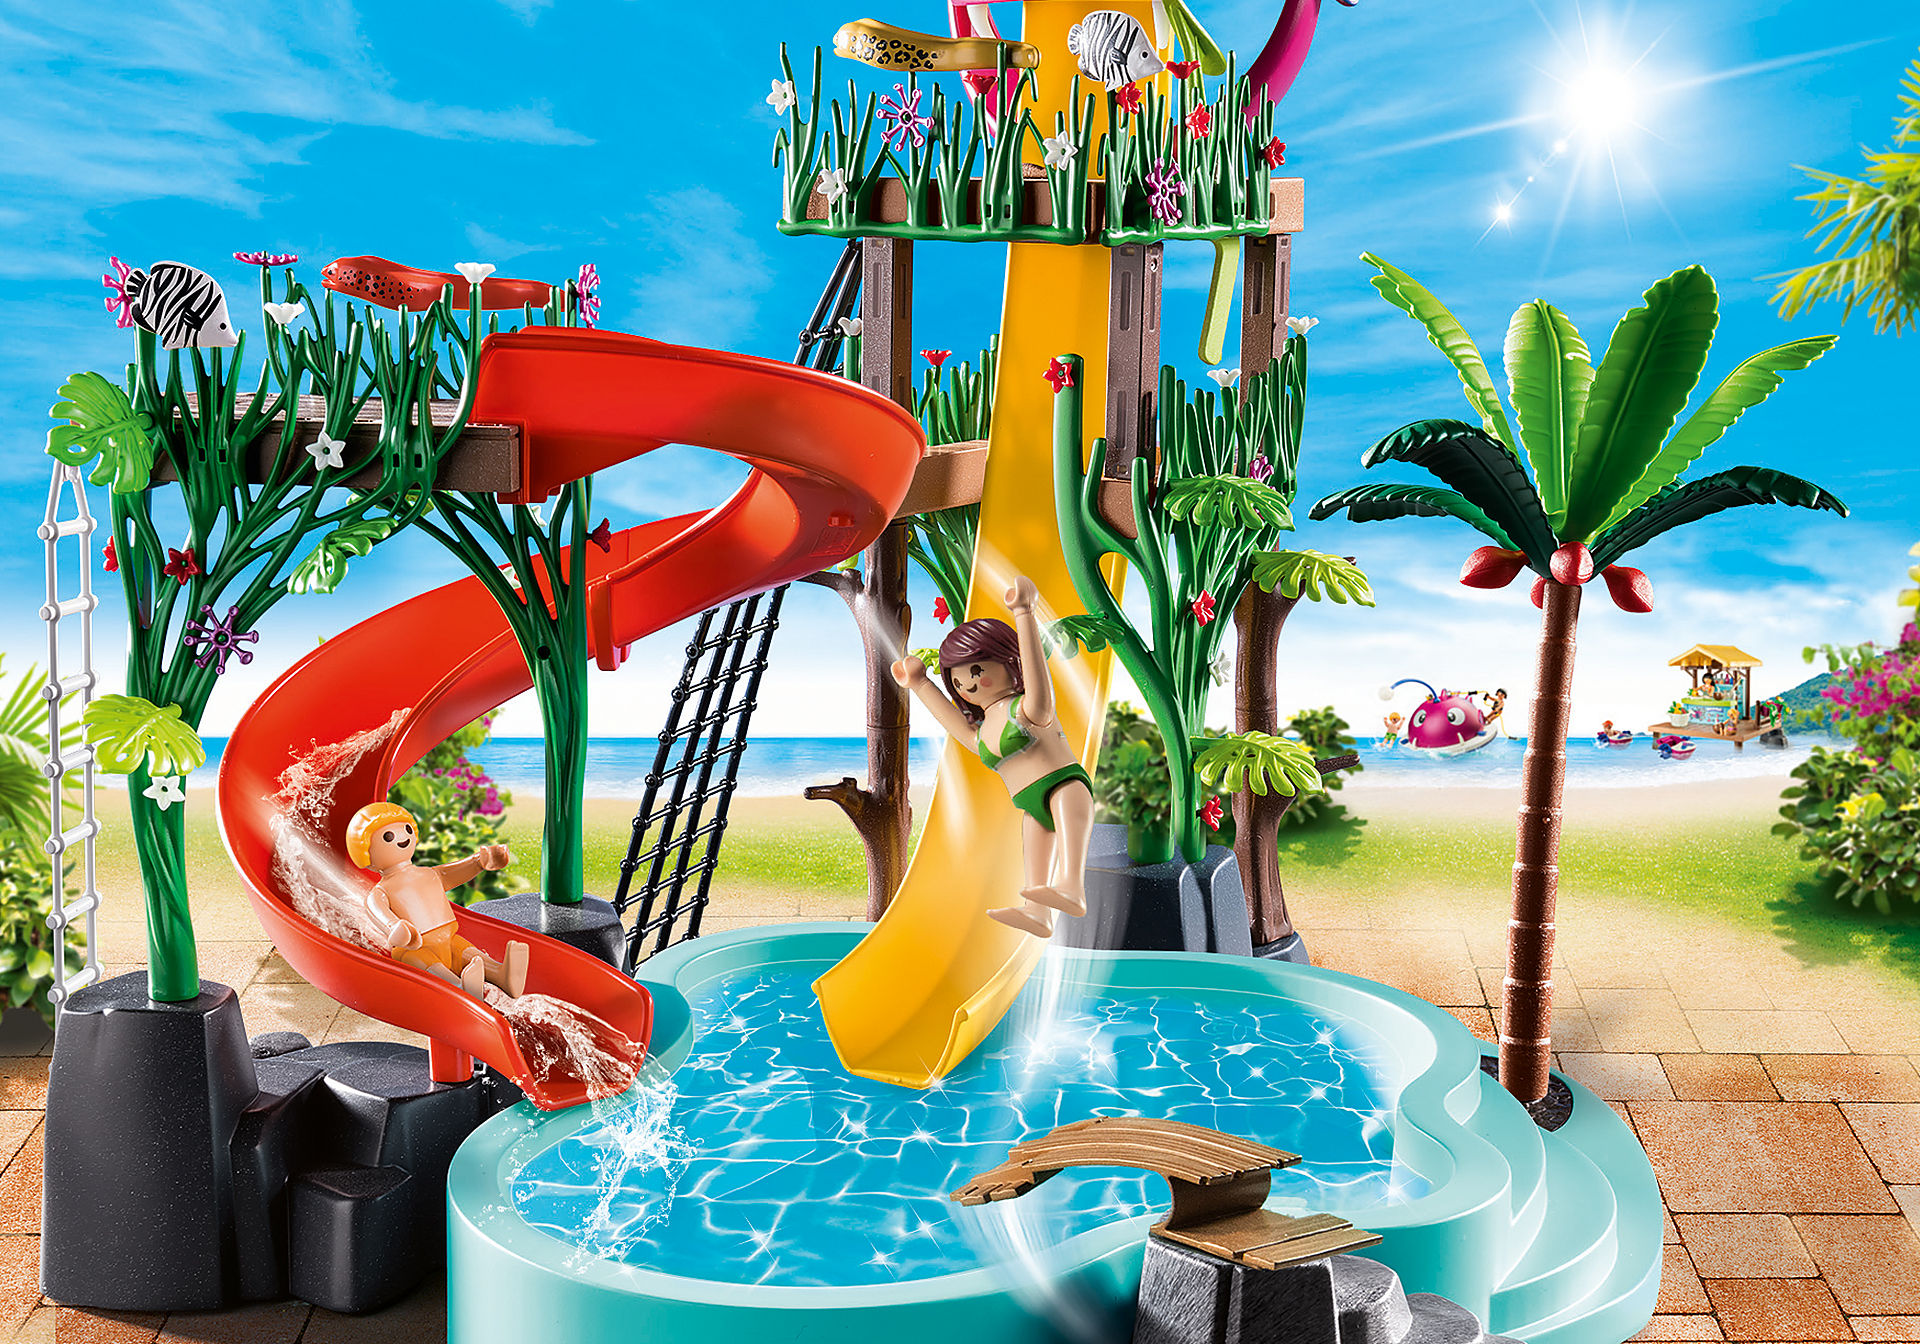 70609 Water Park with Slides zoom image4